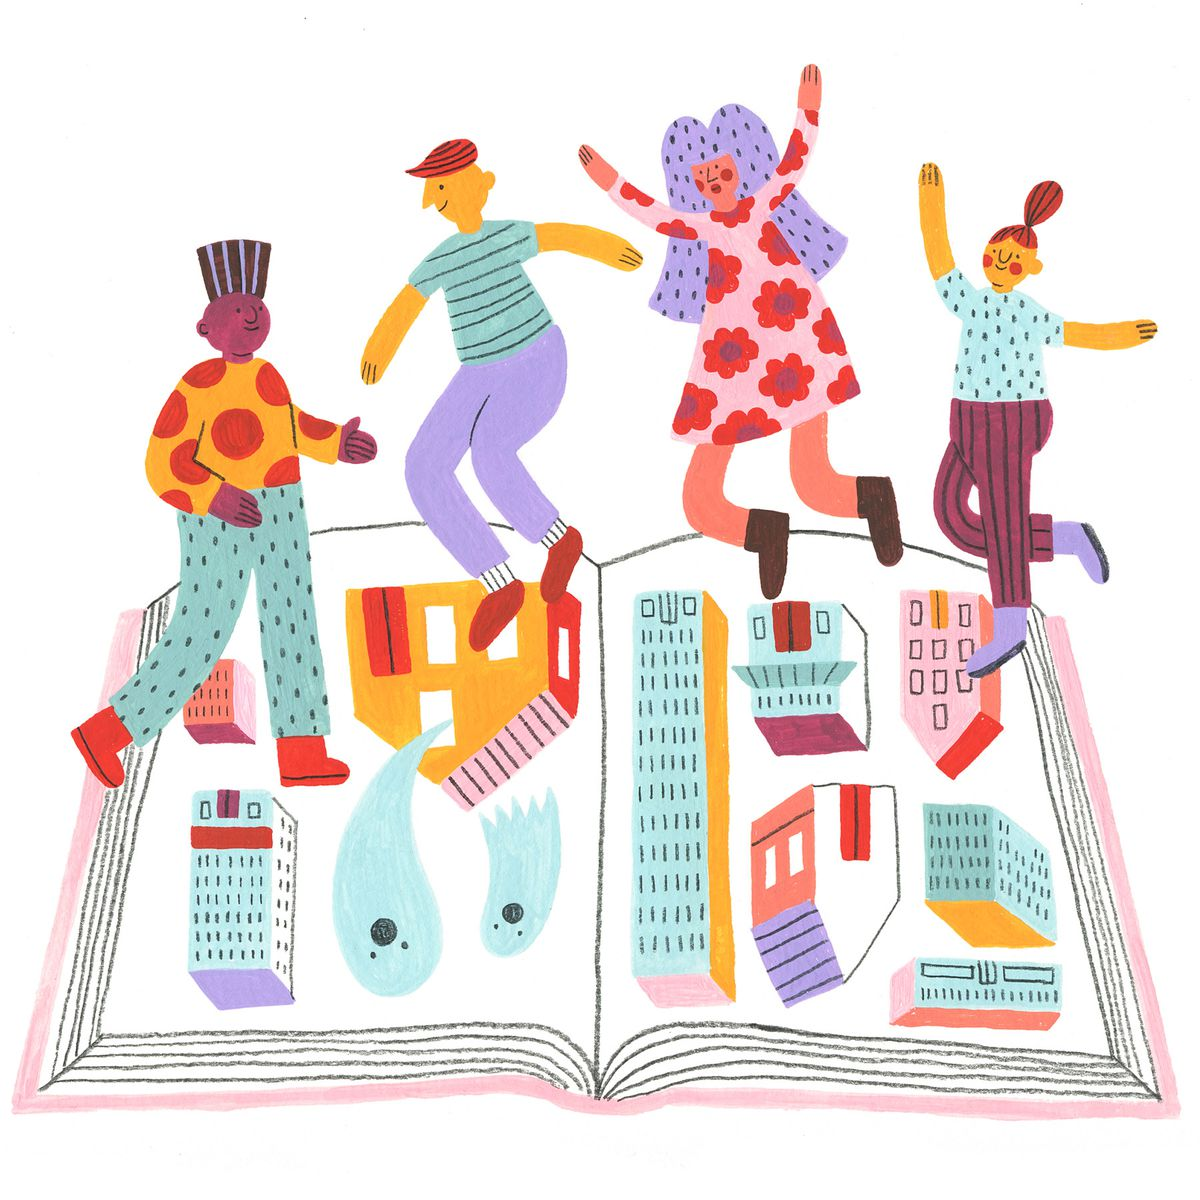 A group of people in brightly patterned clothing jump excitedly over an open illustrated tour book with an assortment of buildings and some ghosts. Illustration.